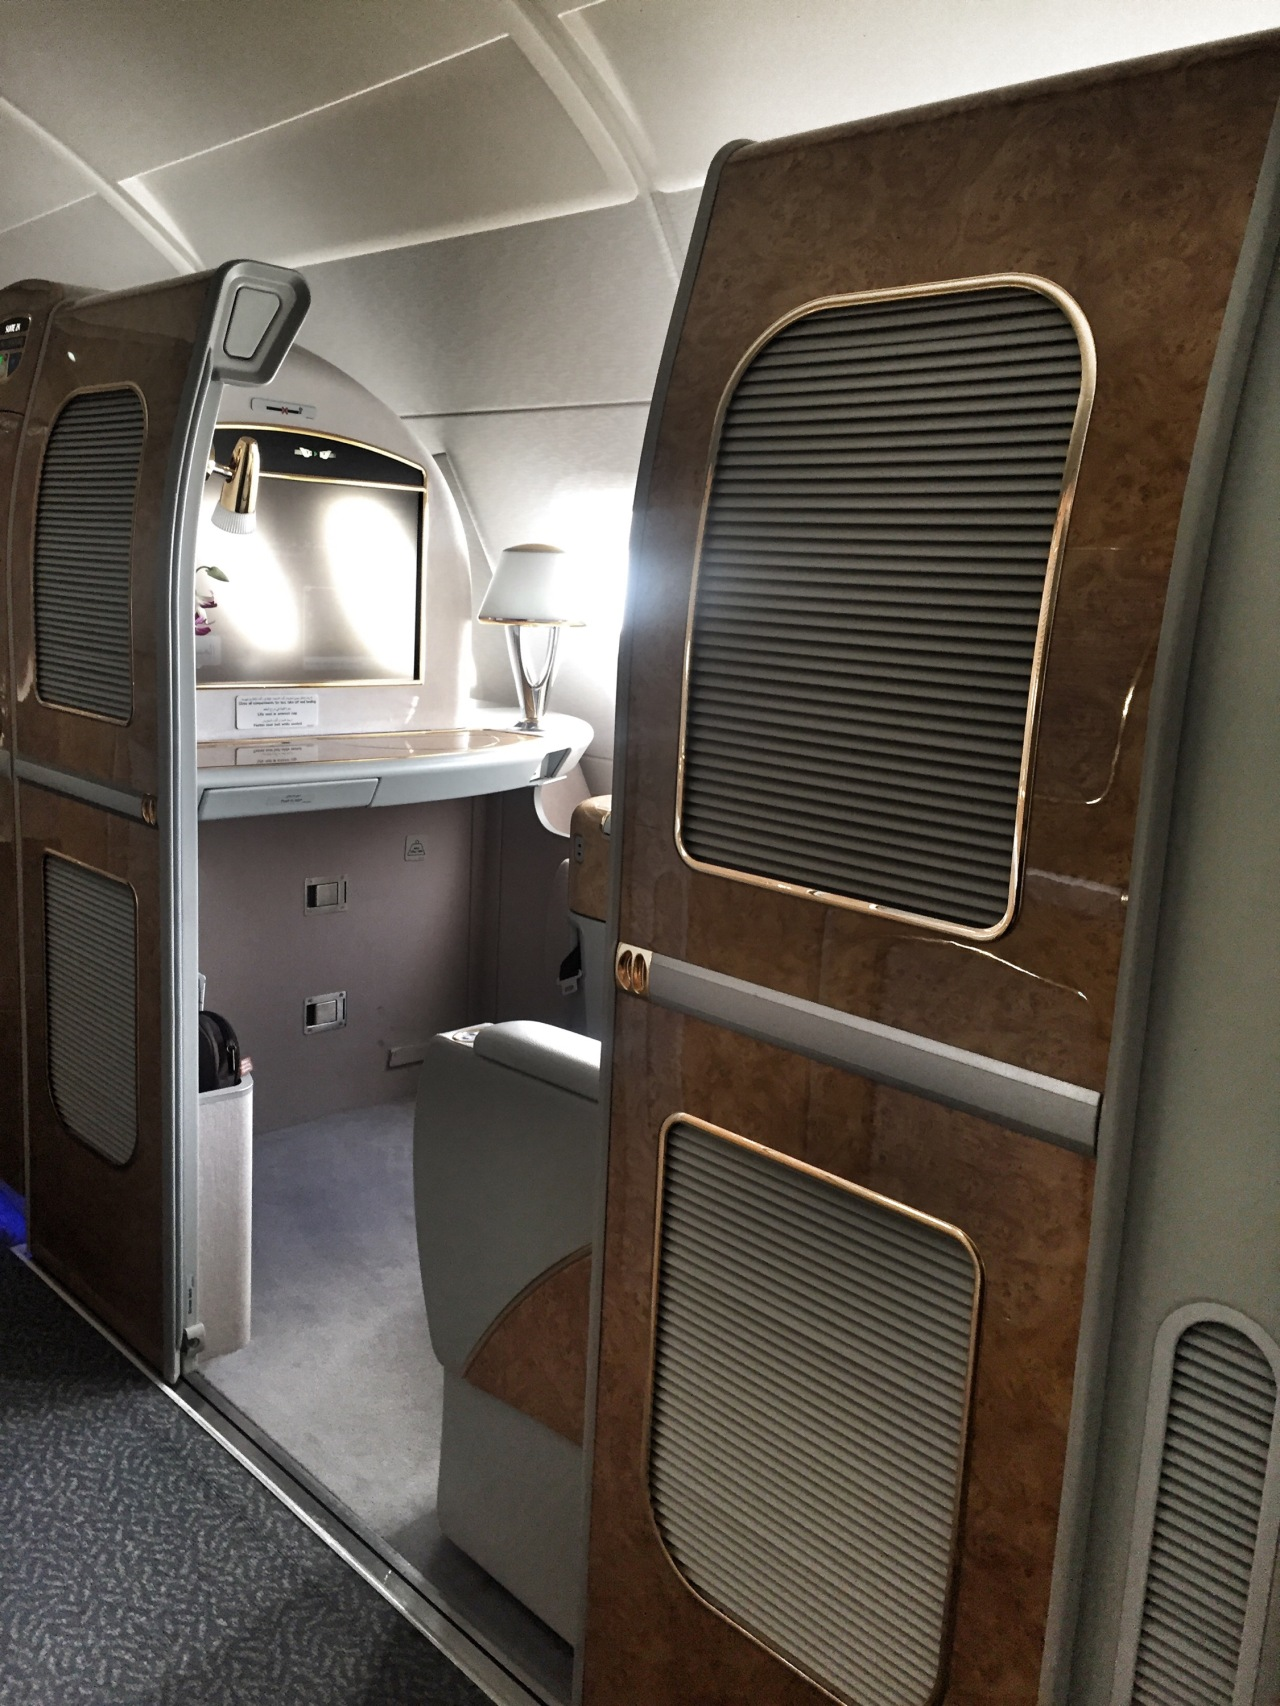 The Big Flight Over – Emirates First Class Review